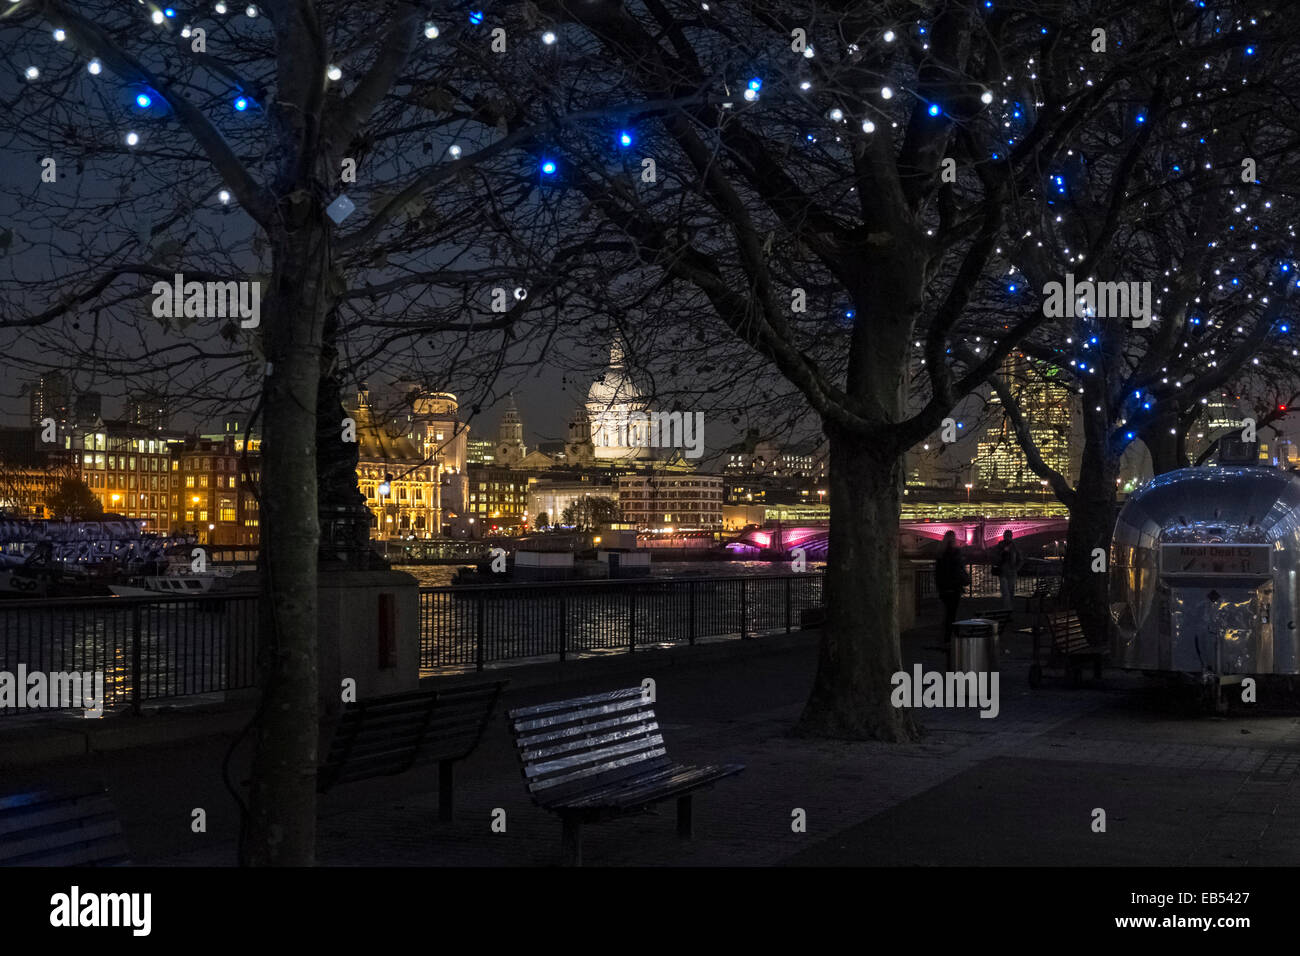 St Pauls Cathedral and riverside buildings at night, London, England UK Stock Photo